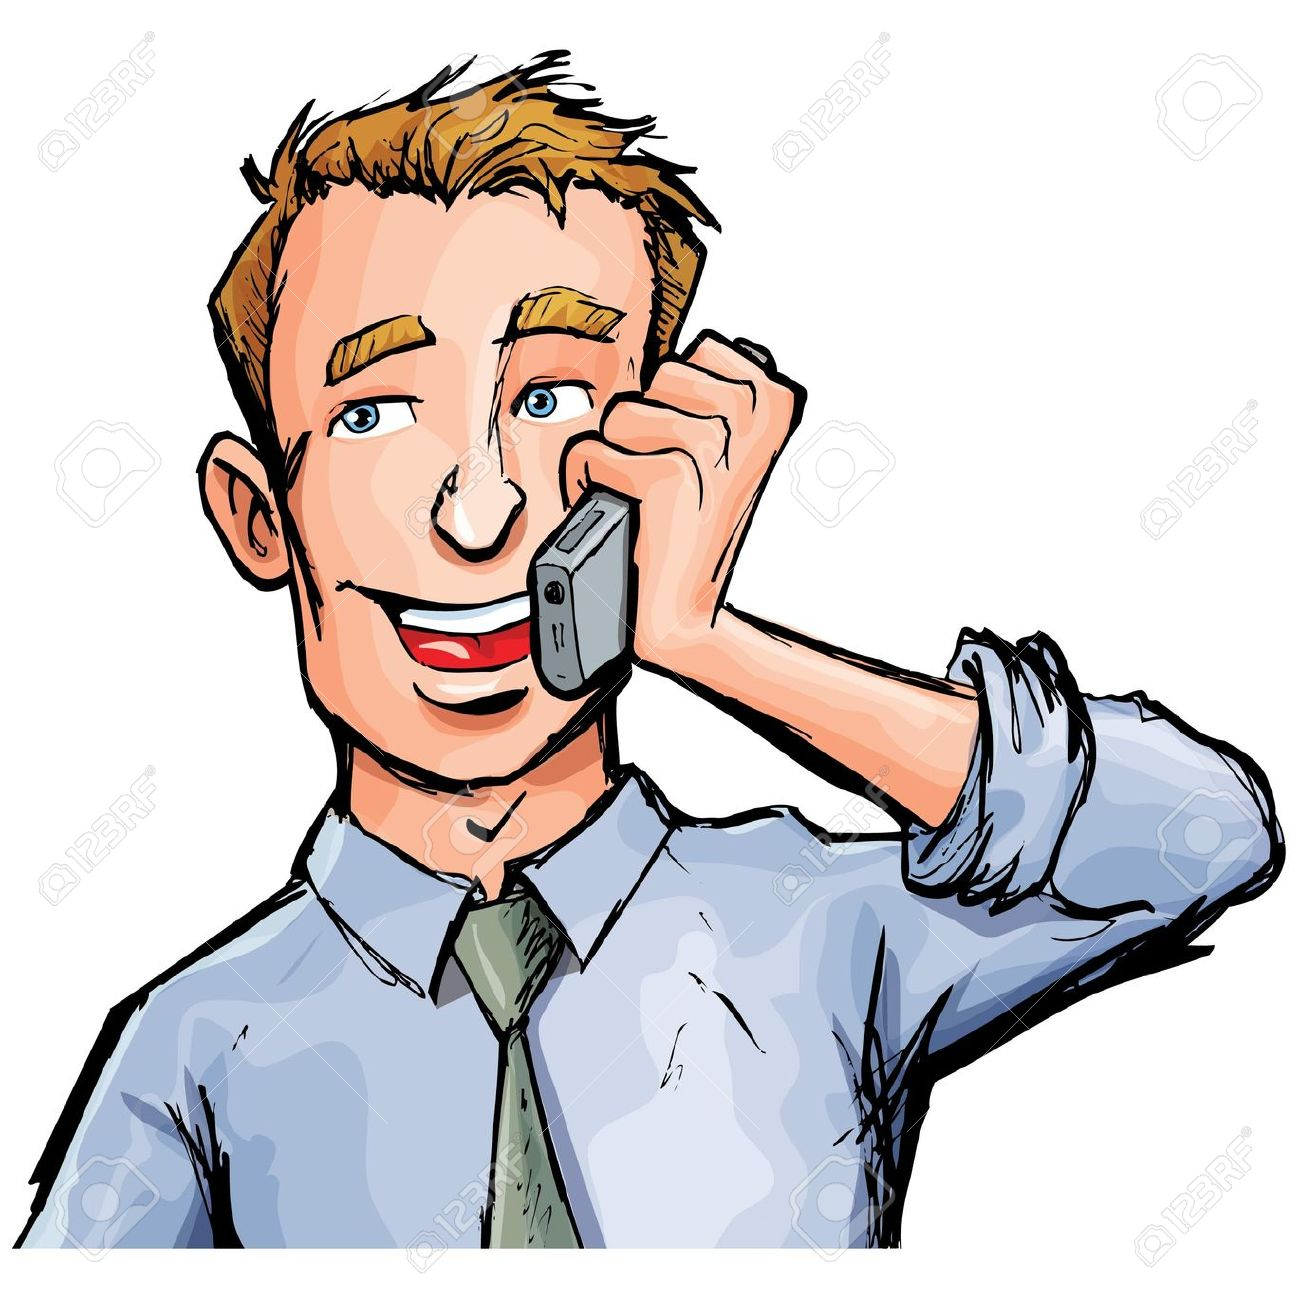 Telephoning Clipart 20 Free Cliparts